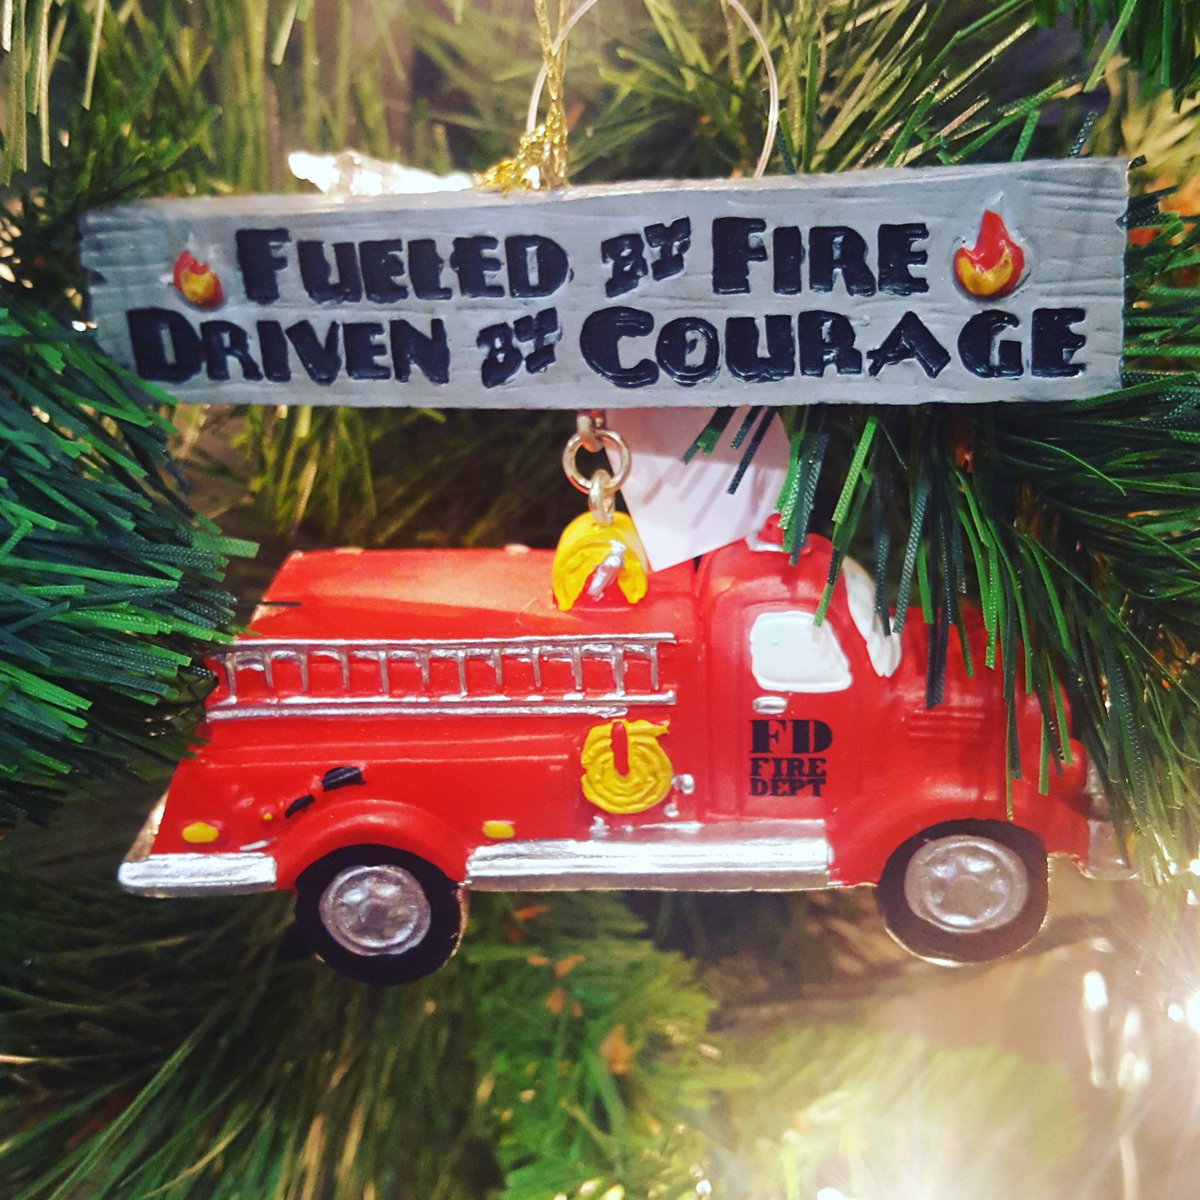 Perfect Christmas gifts are here! #firemen #fireman #firetruck #fire ...